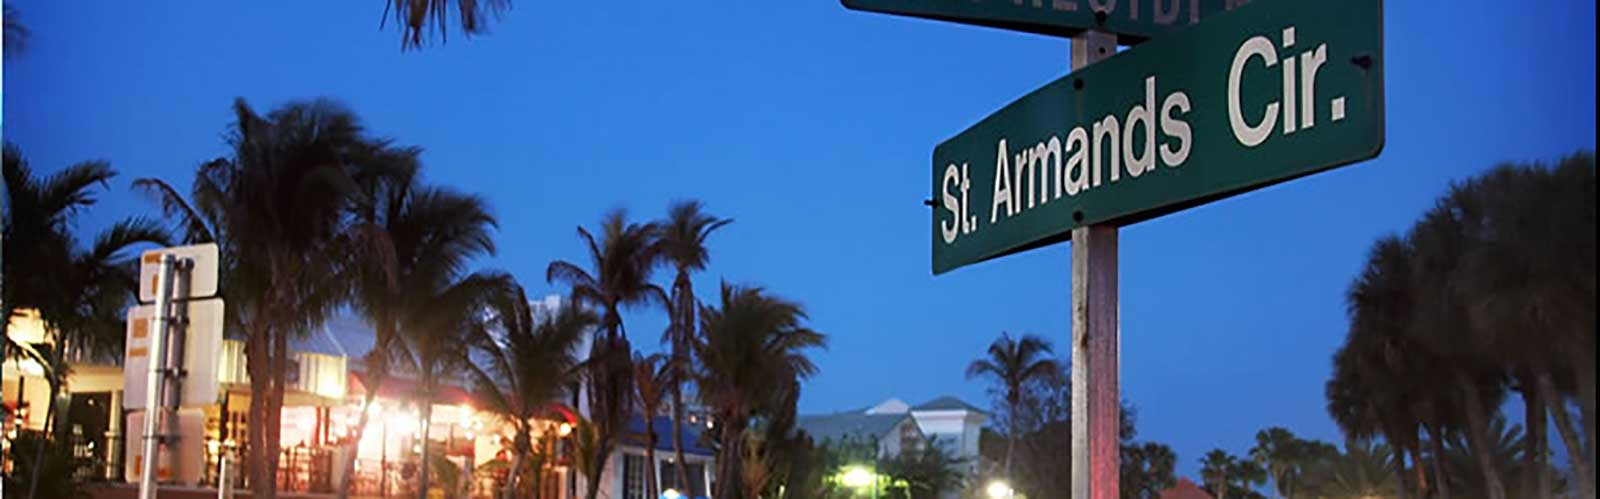 Bet You Didn't Know THIS About the Famous St. Armands Circle